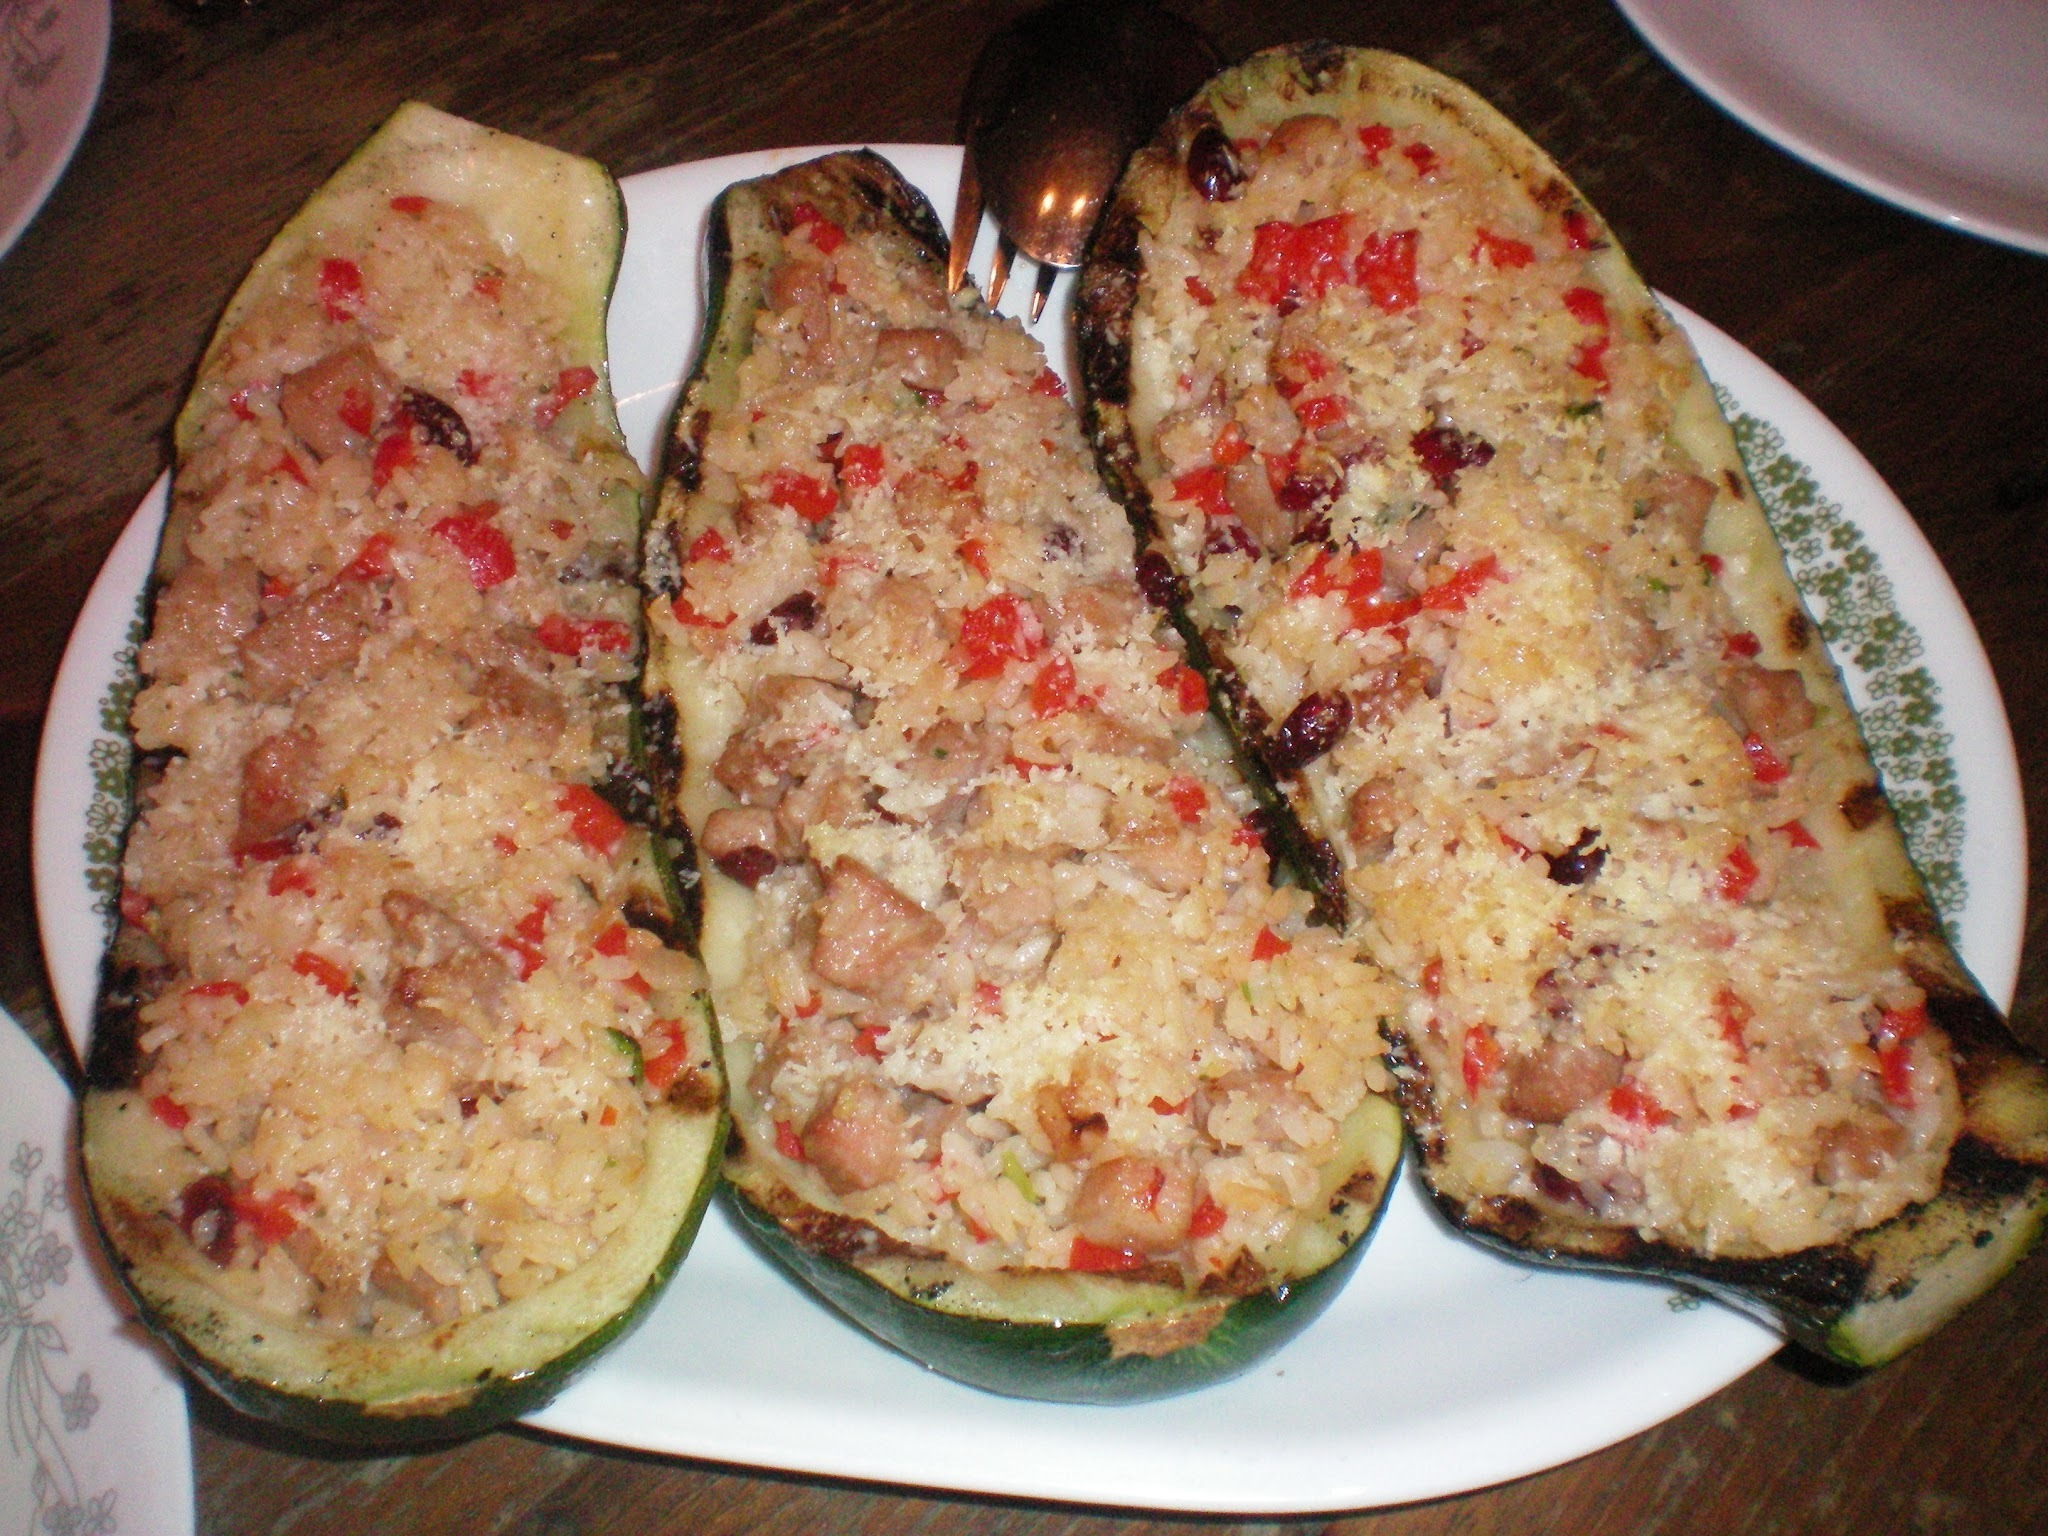 East Meets West- Zucchini with Pork and Rice Stuffing